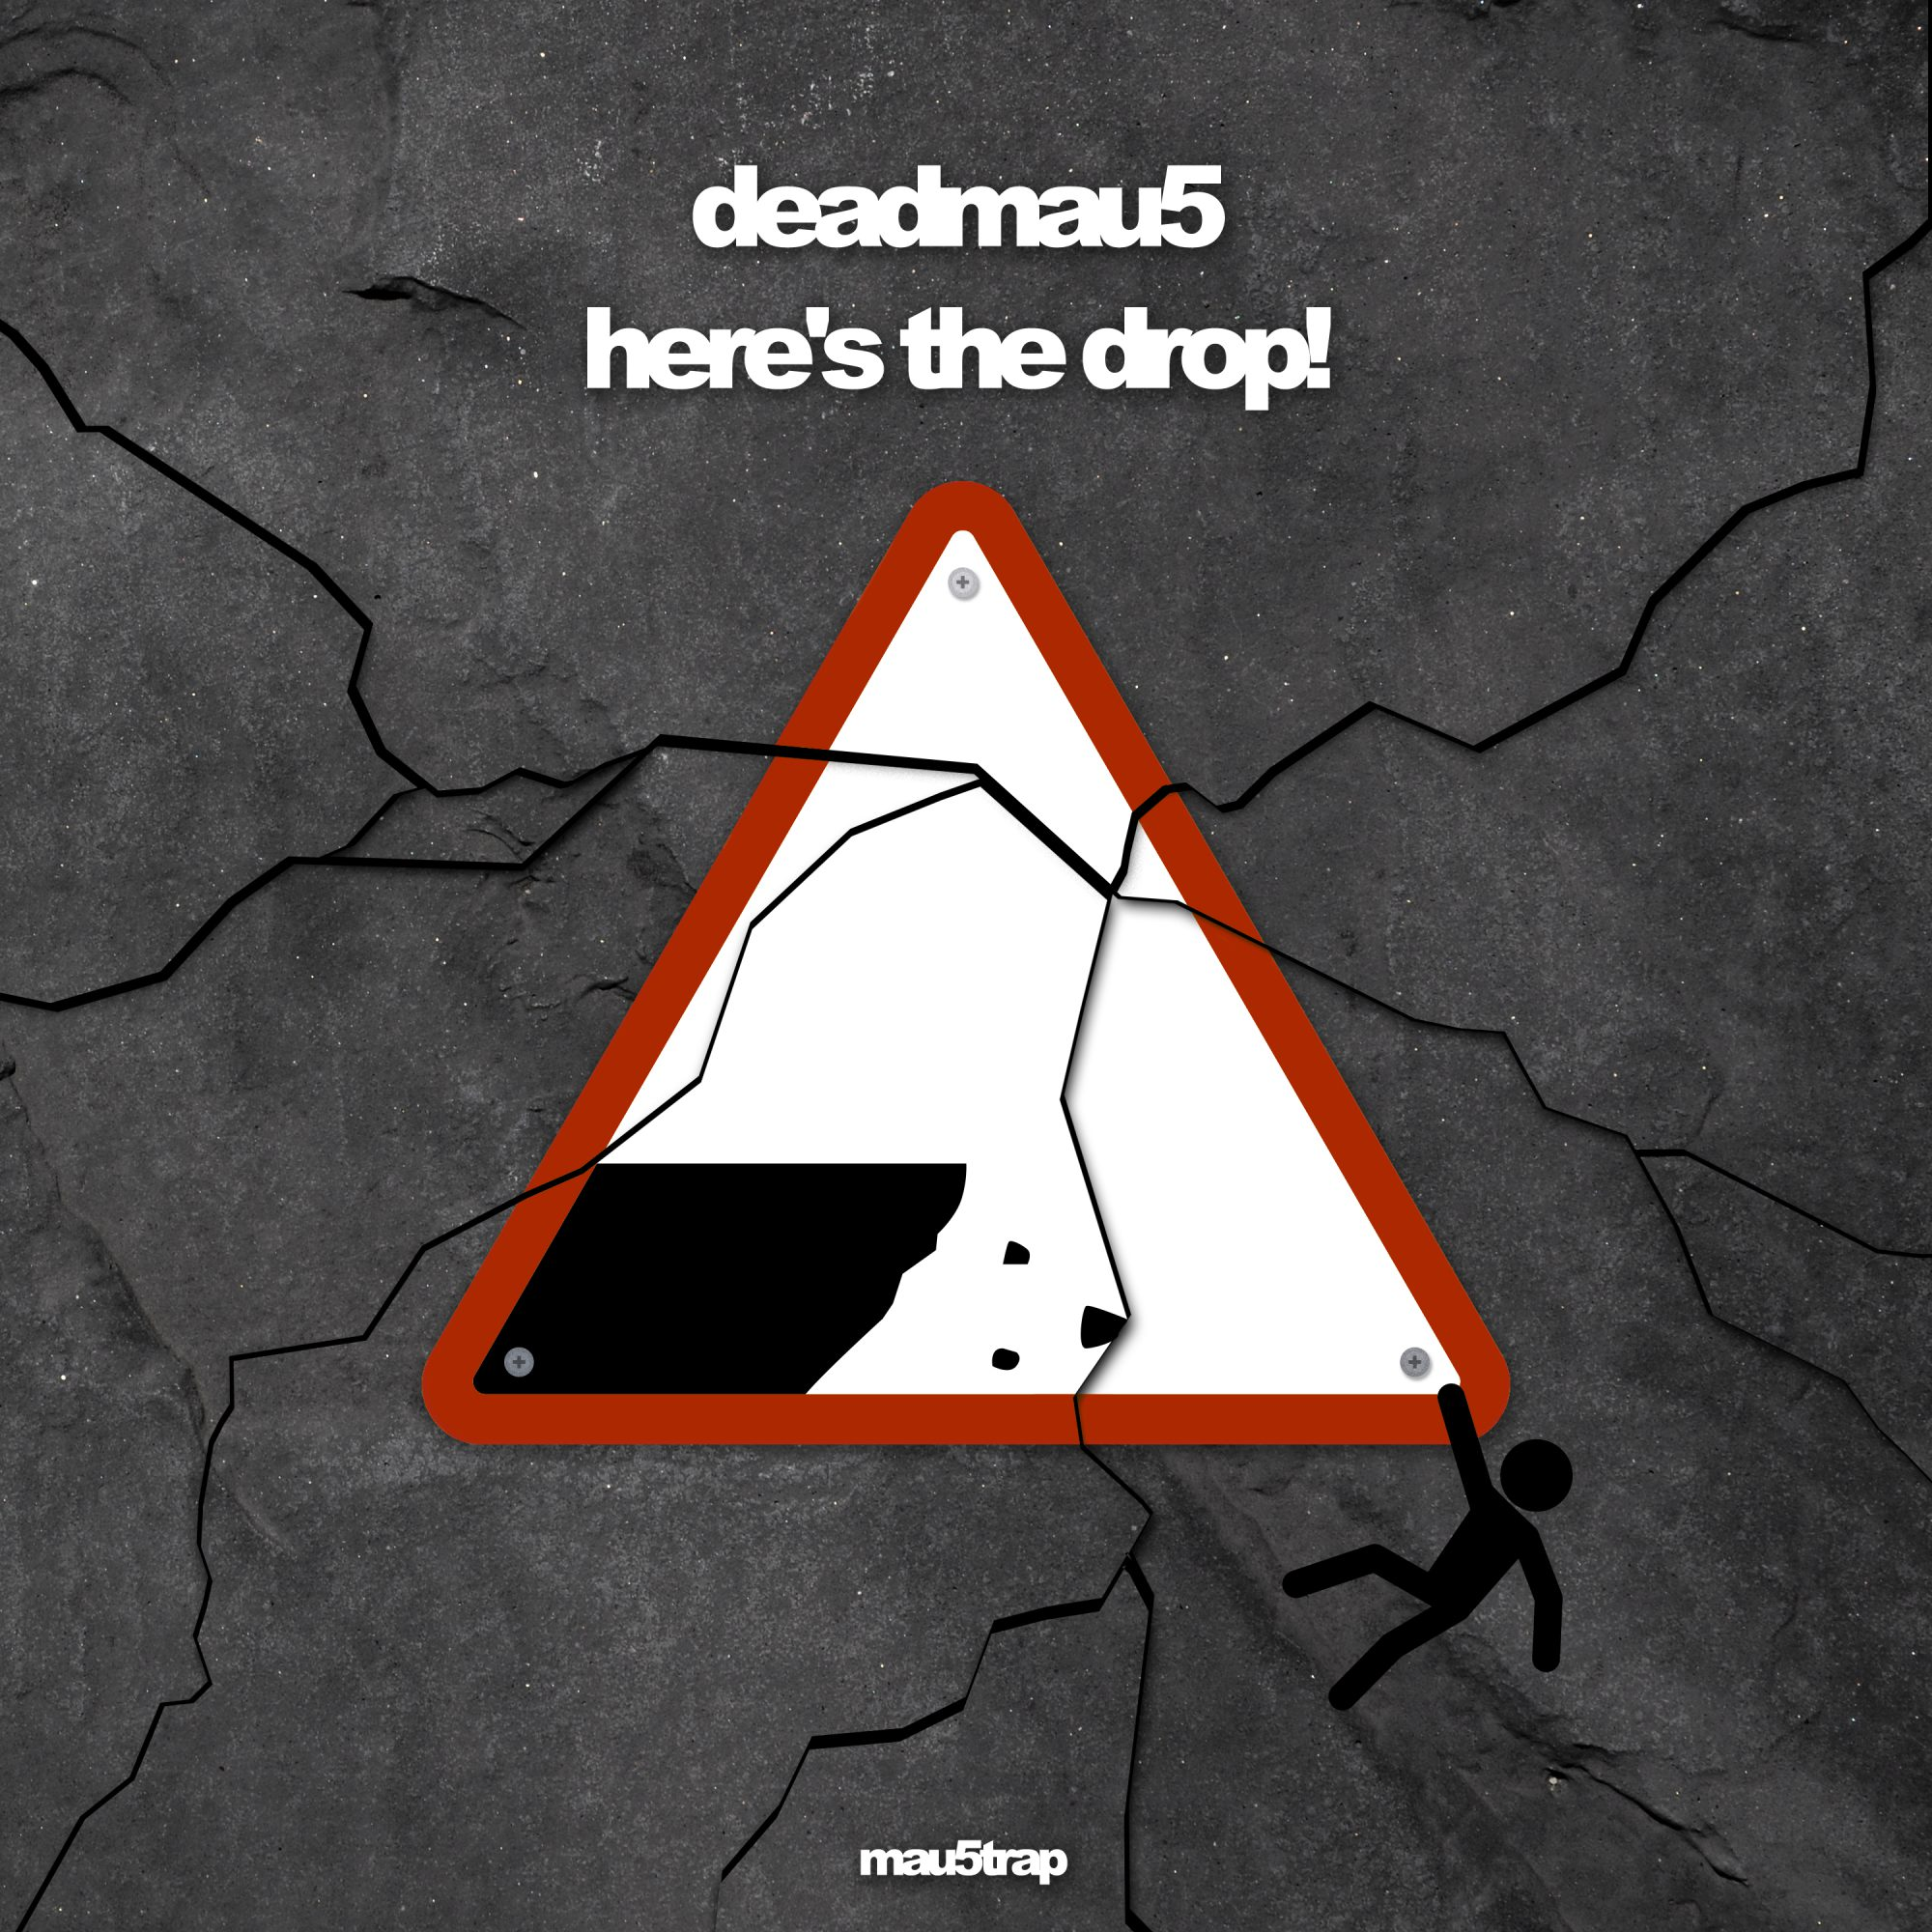 deadmau5 here's the drop!